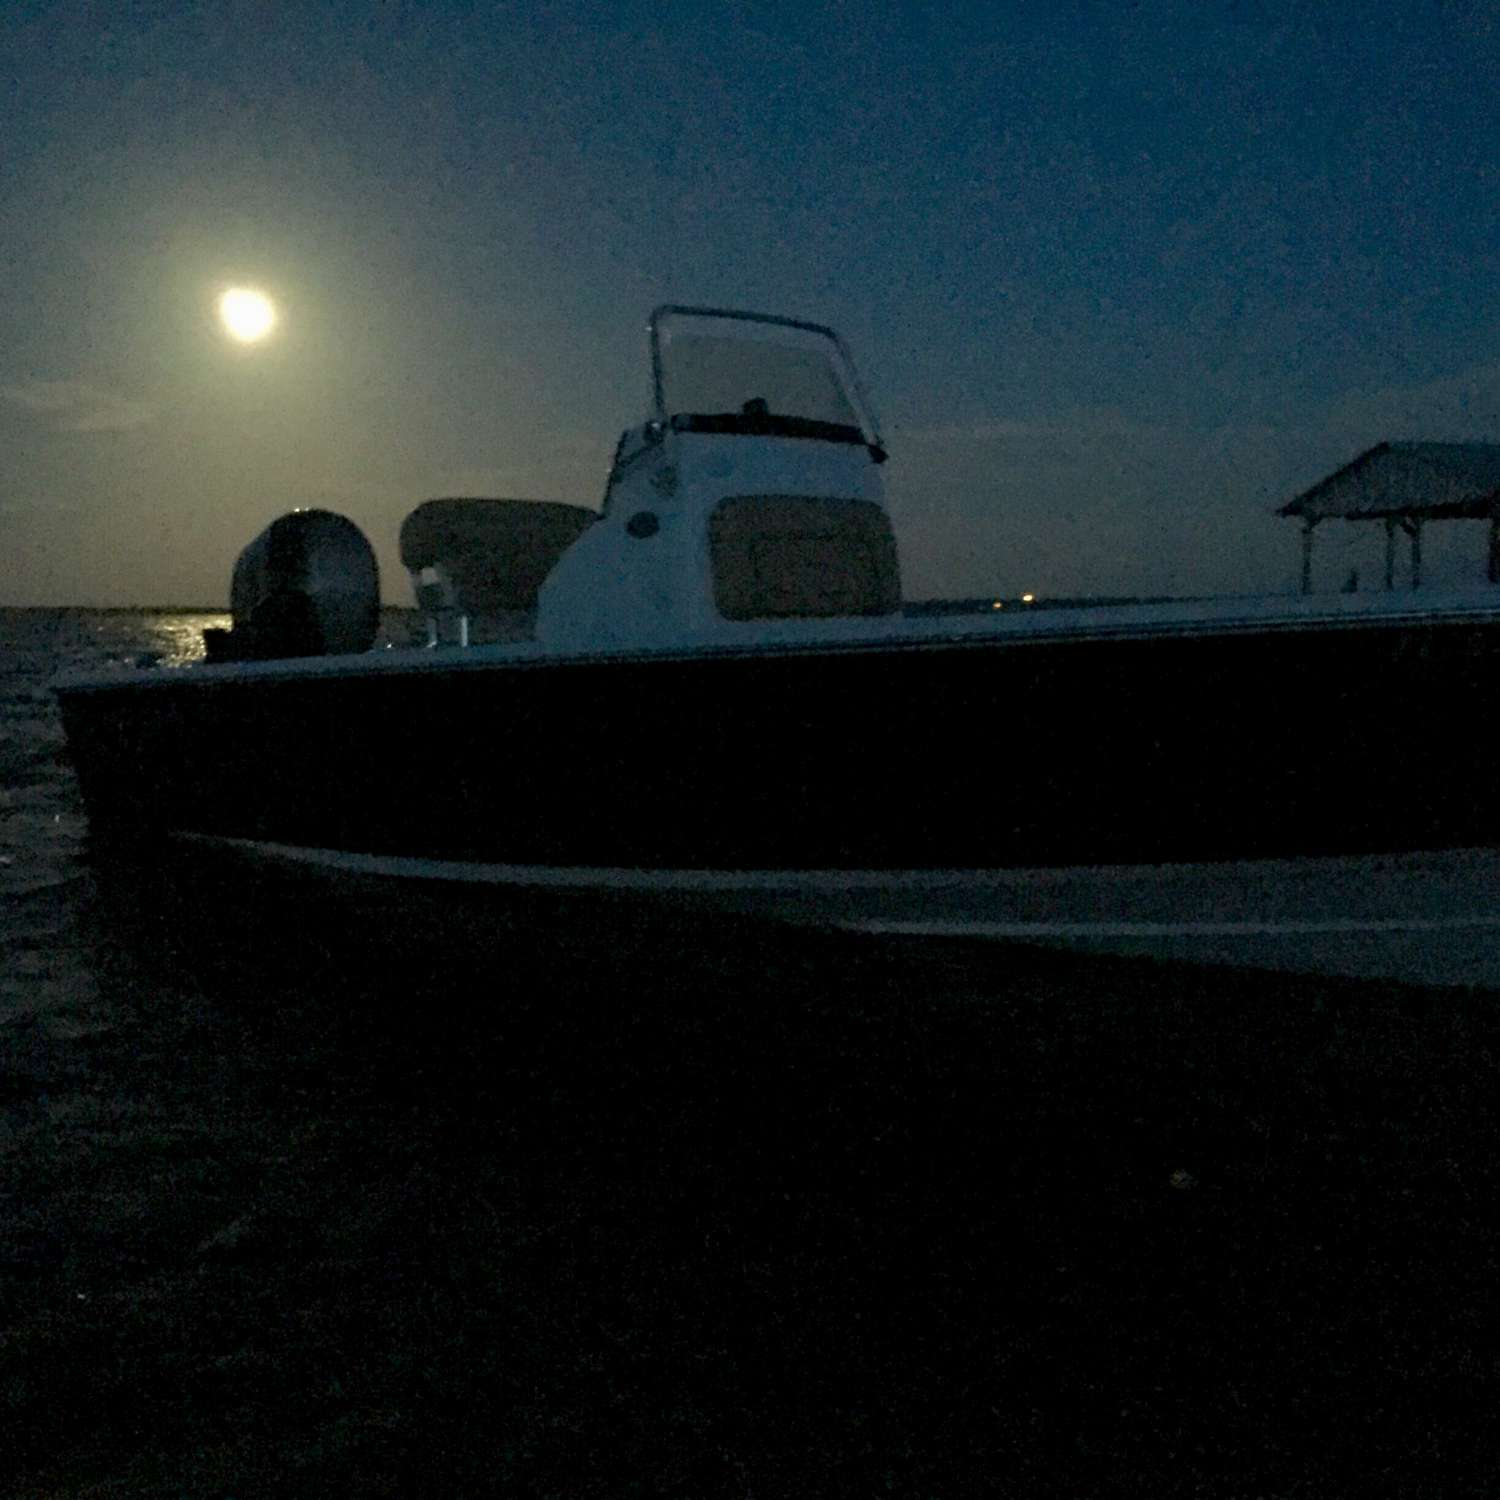 Title: Full Moon Run - On board their Sportsman Masters 227 Bay Boat - Location: Okeechobee, Florida. Participating in the Photo Contest #SportsmanJuly2016